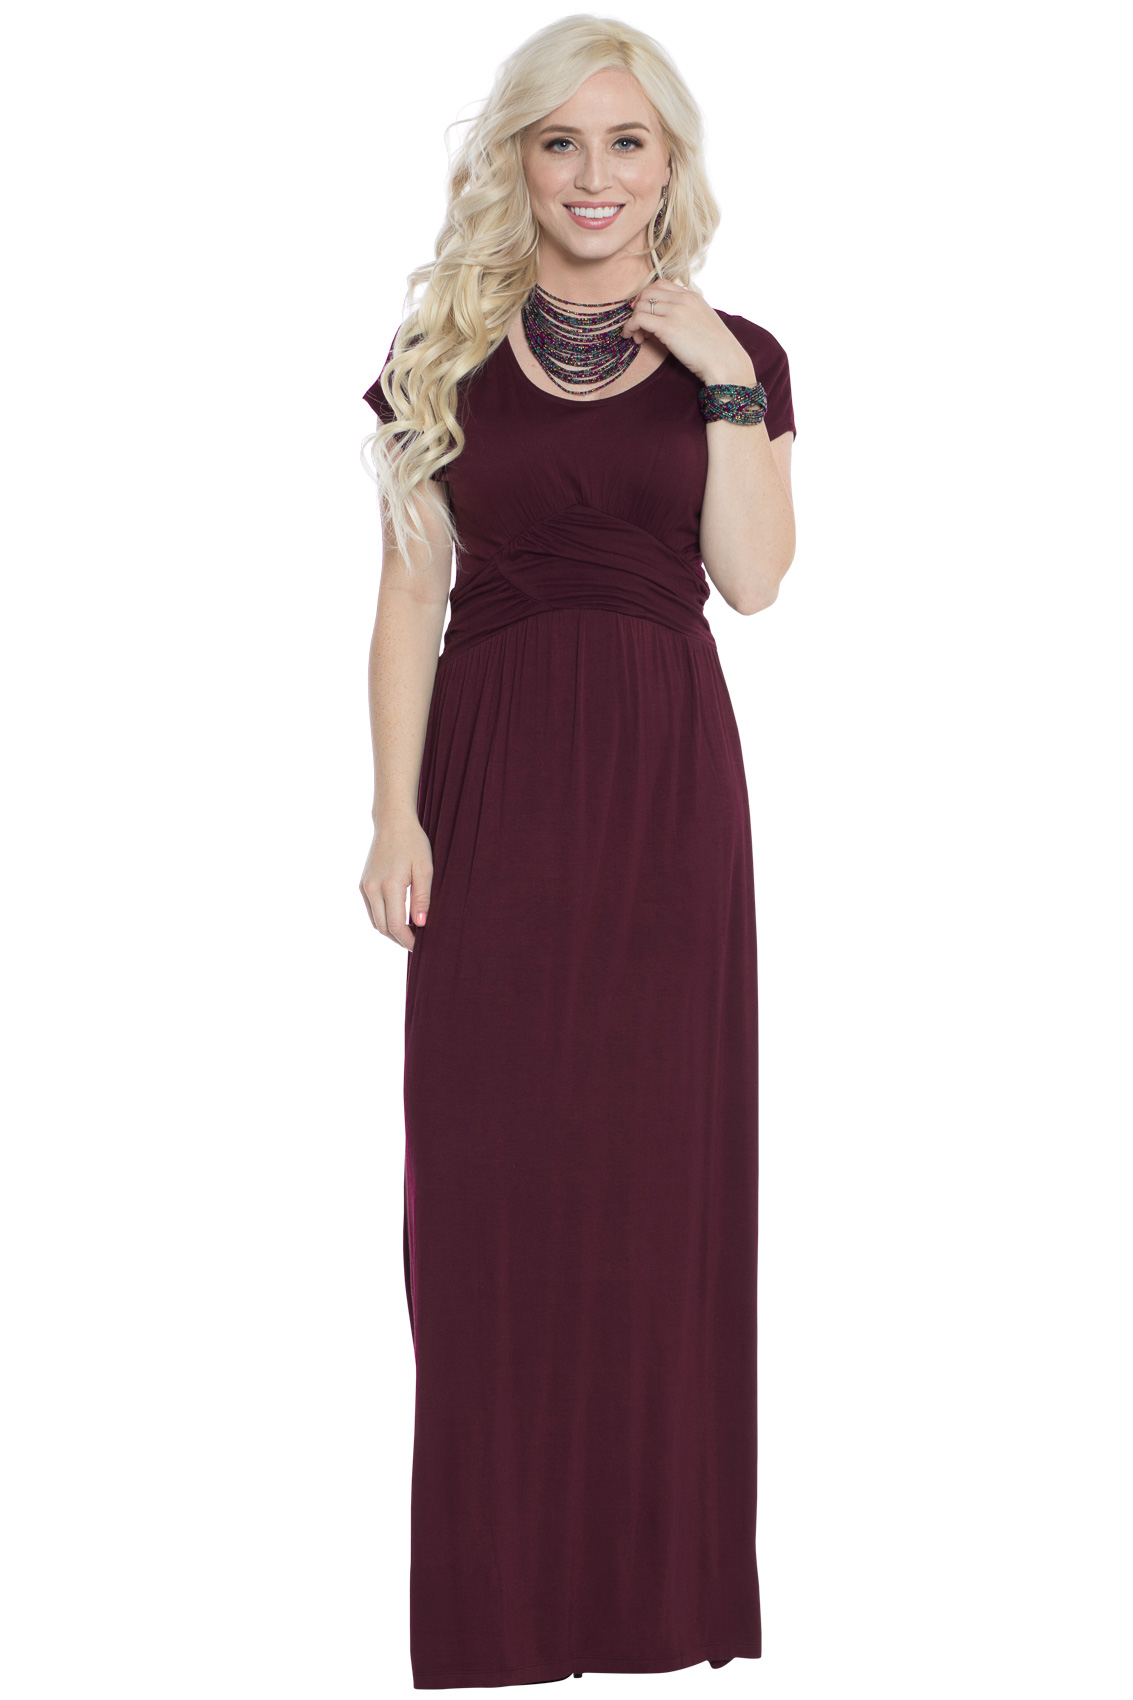 Athena modest maxi dress wruched empire waist in deep plum purple athena modest maxi or bridesmaid dress in deep plum purple or burgundy plum ombrellifo Gallery